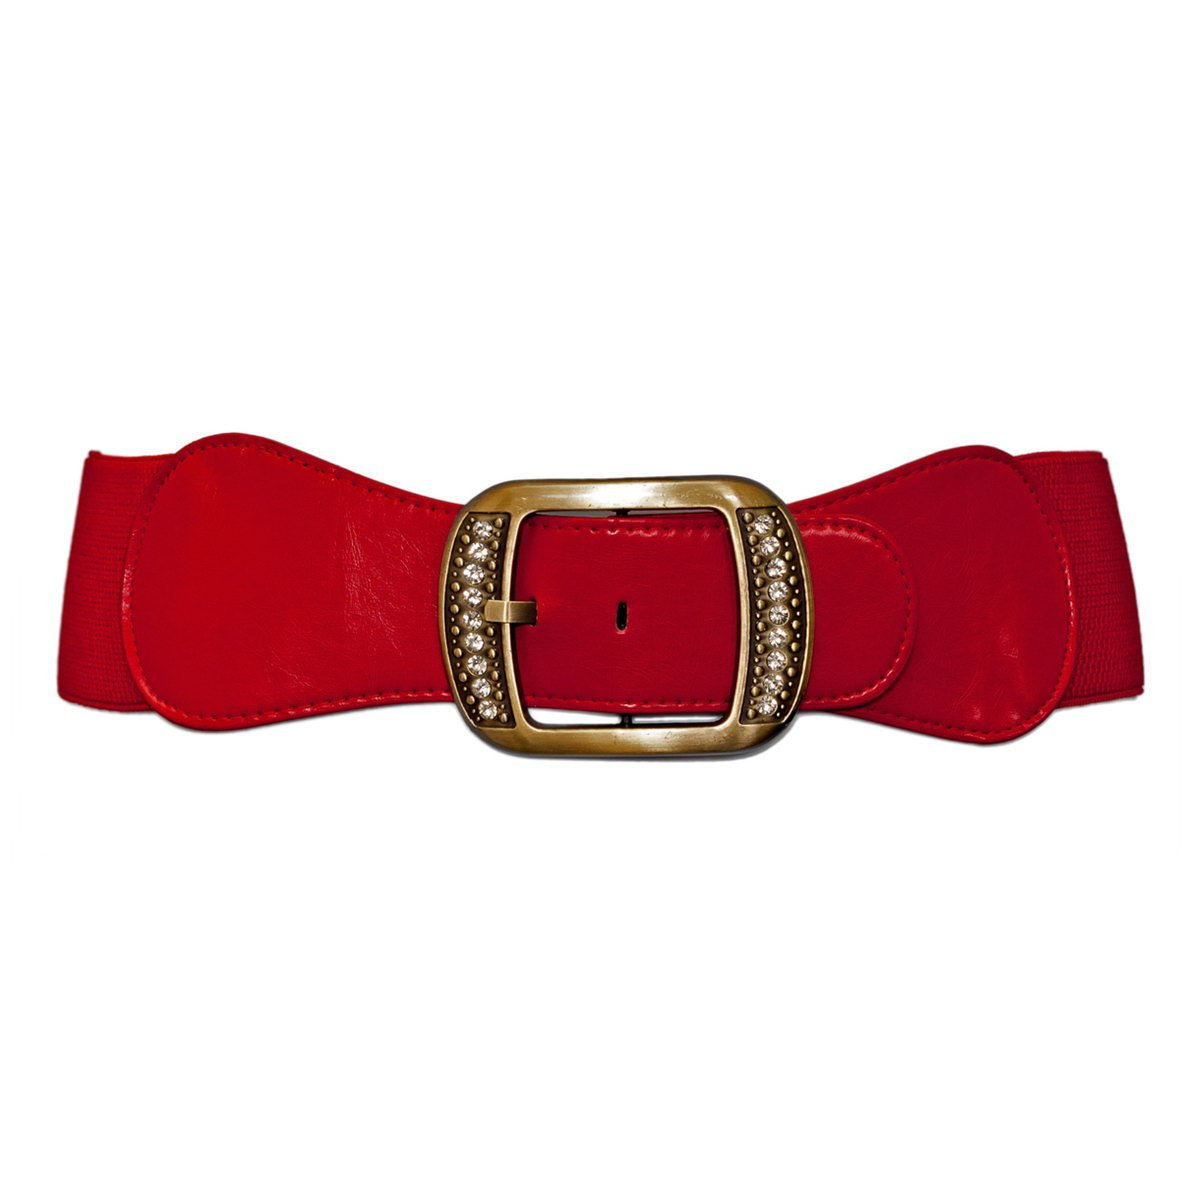 Vintage Wide Belts, Cinch Belts  Plus Size Rhinestone Studded Burnished Buckle Elastic Belt $13.99 AT vintagedancer.com